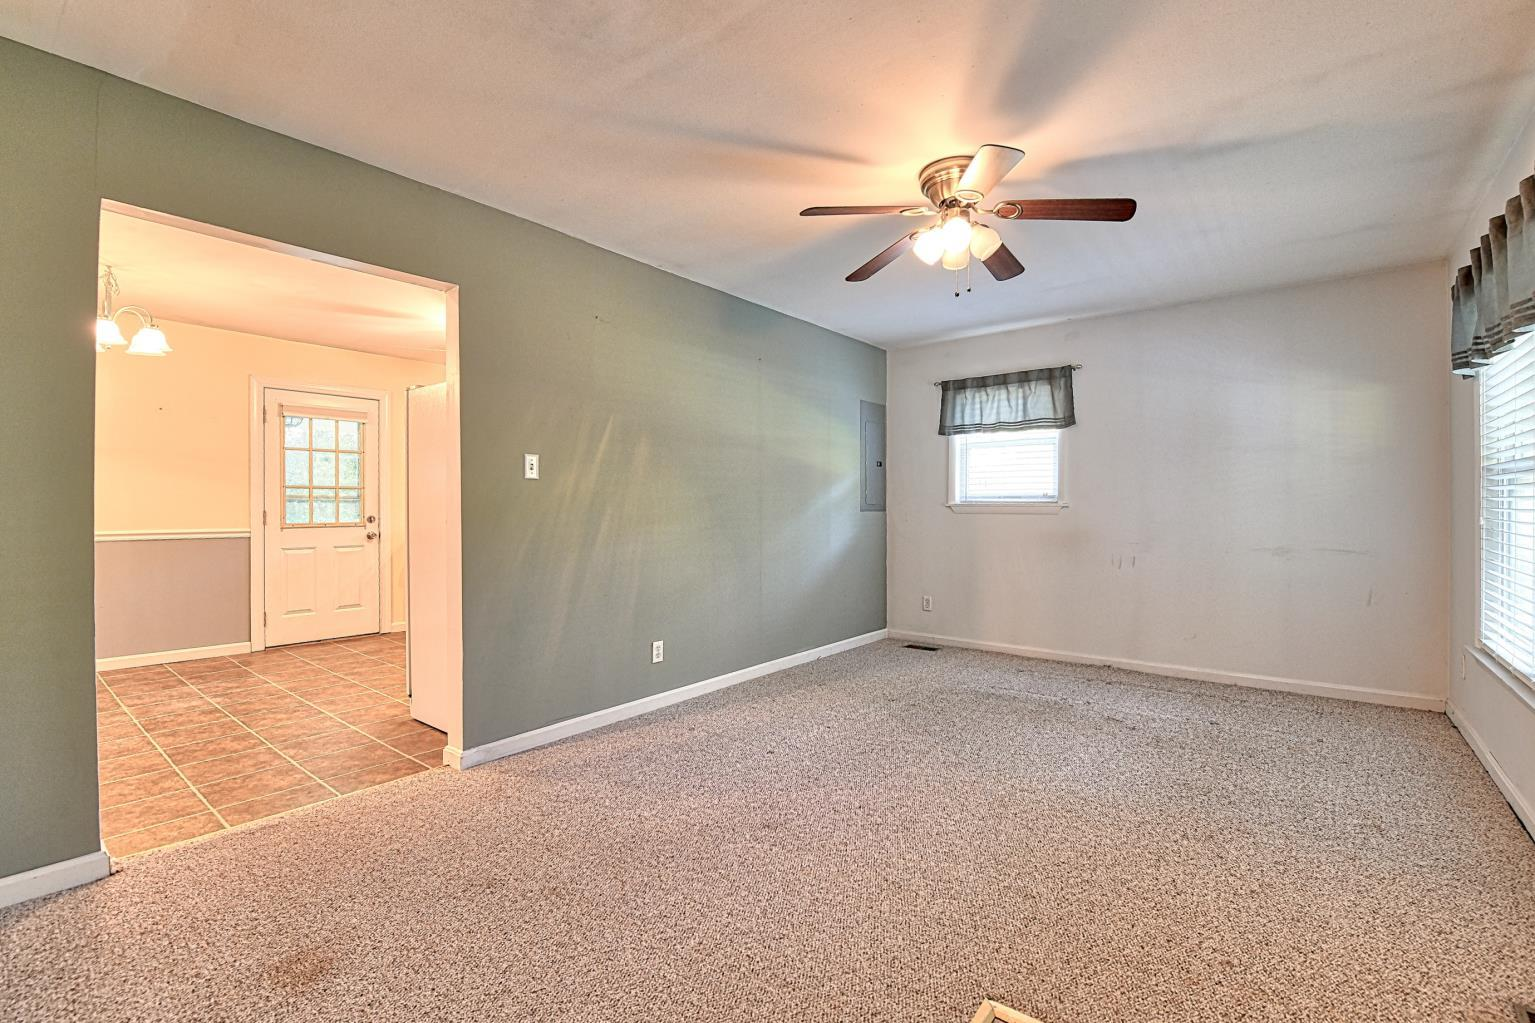 The Living Room at 29783 Skyview Drive in Saint Marys County MD - Listed by Marie Lally, Realtor with O'Brien Realty of Southern MD